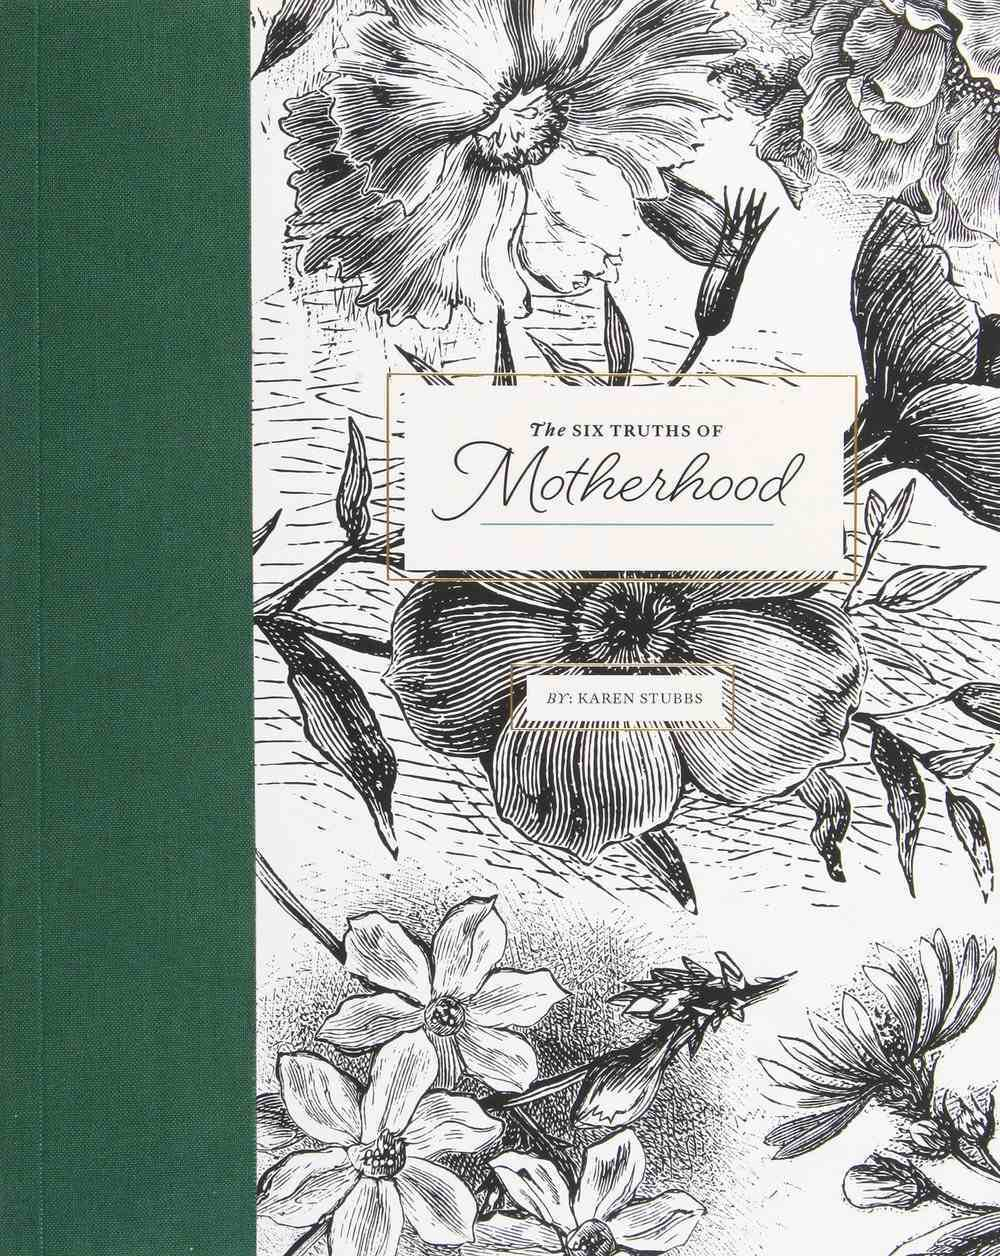 Six Truths of Motherhood (Includes Two Art Prints) (Limited Edition) Box